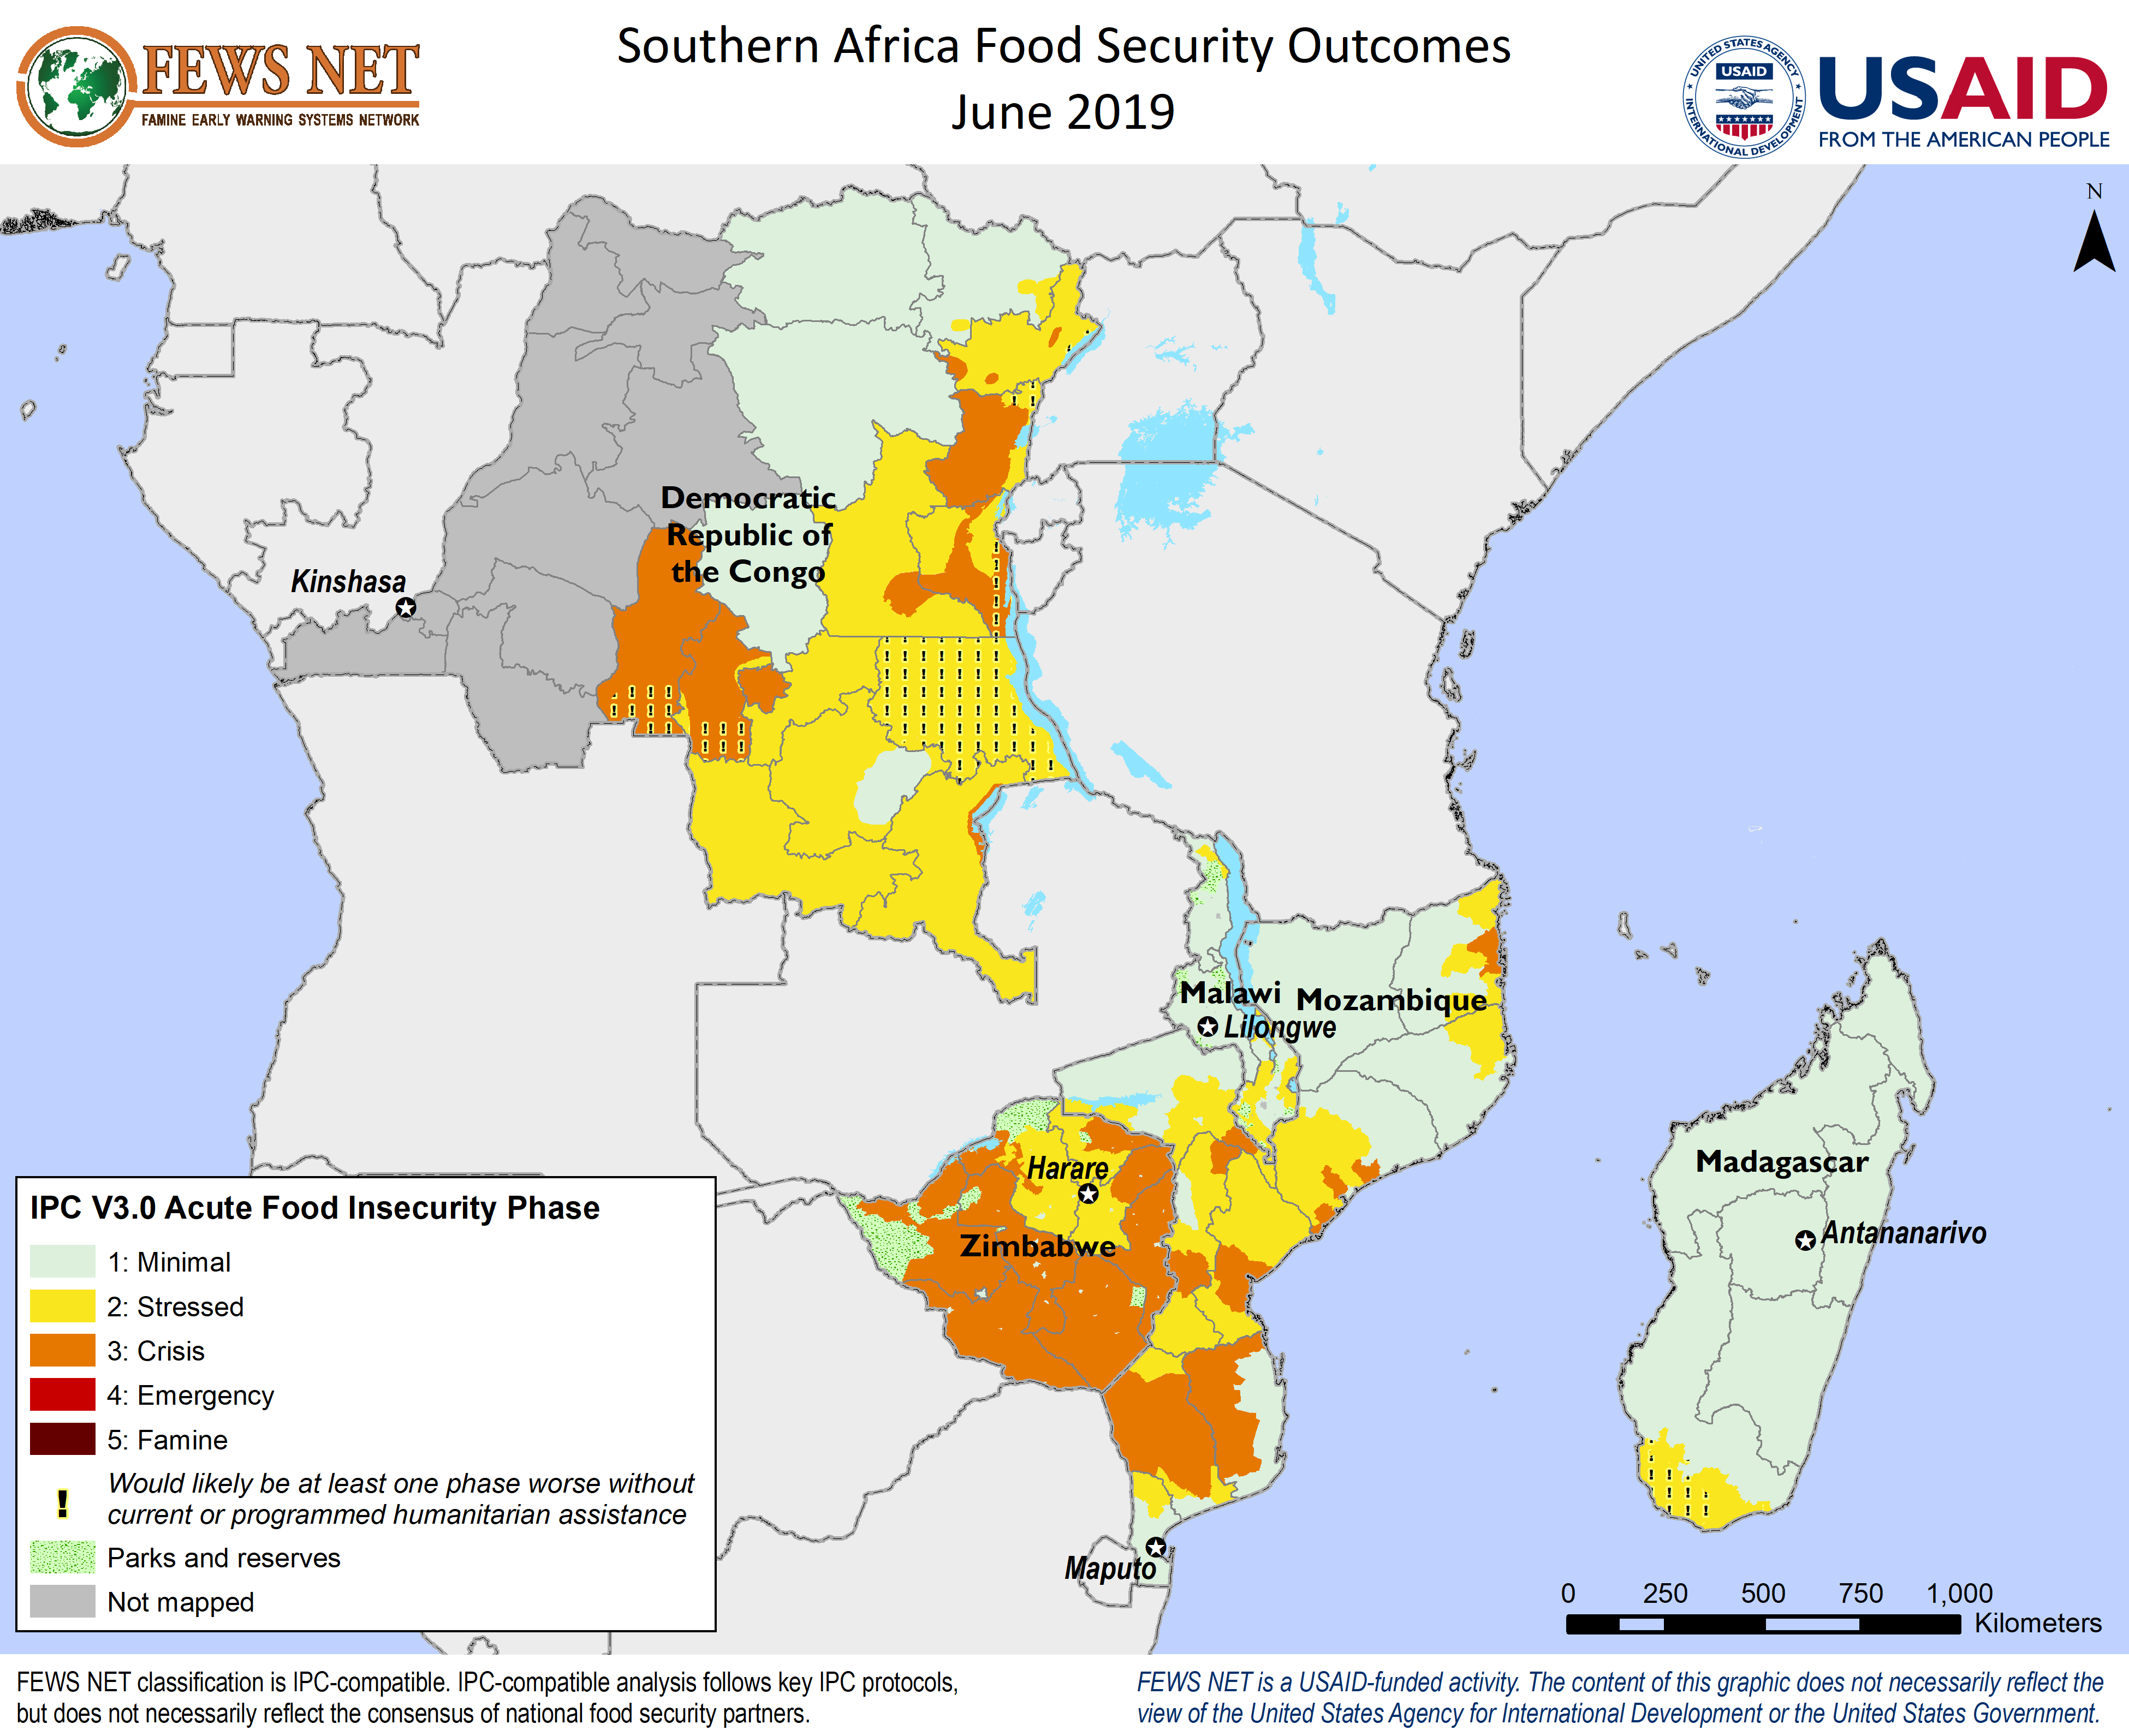 Southern Africa Food Security Classification (June 2019